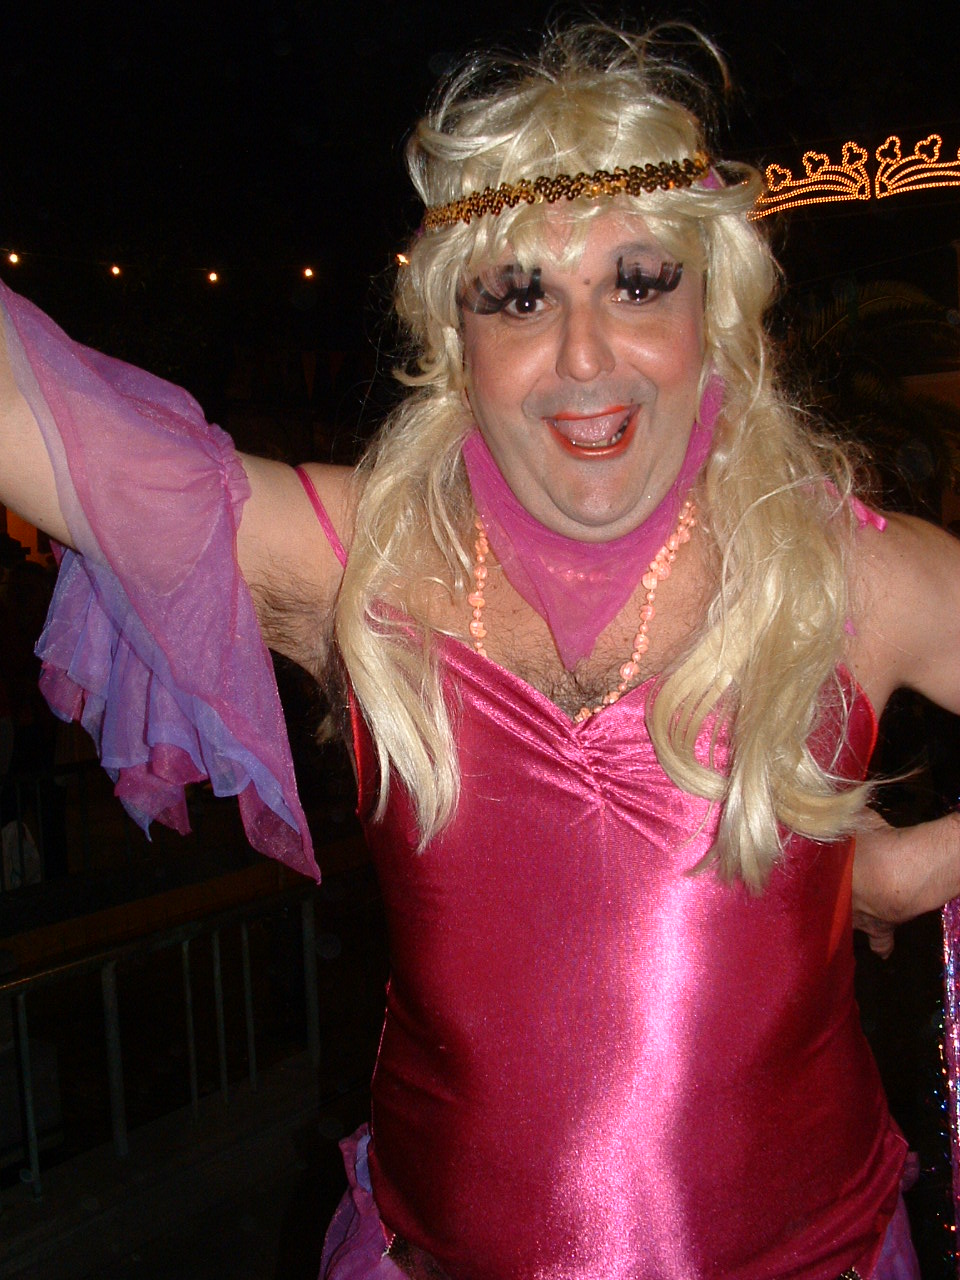 Man dress in pink flapper costume, and blonde wig, Ambassador's Parade, Santa Cruz de La Palma, 2006